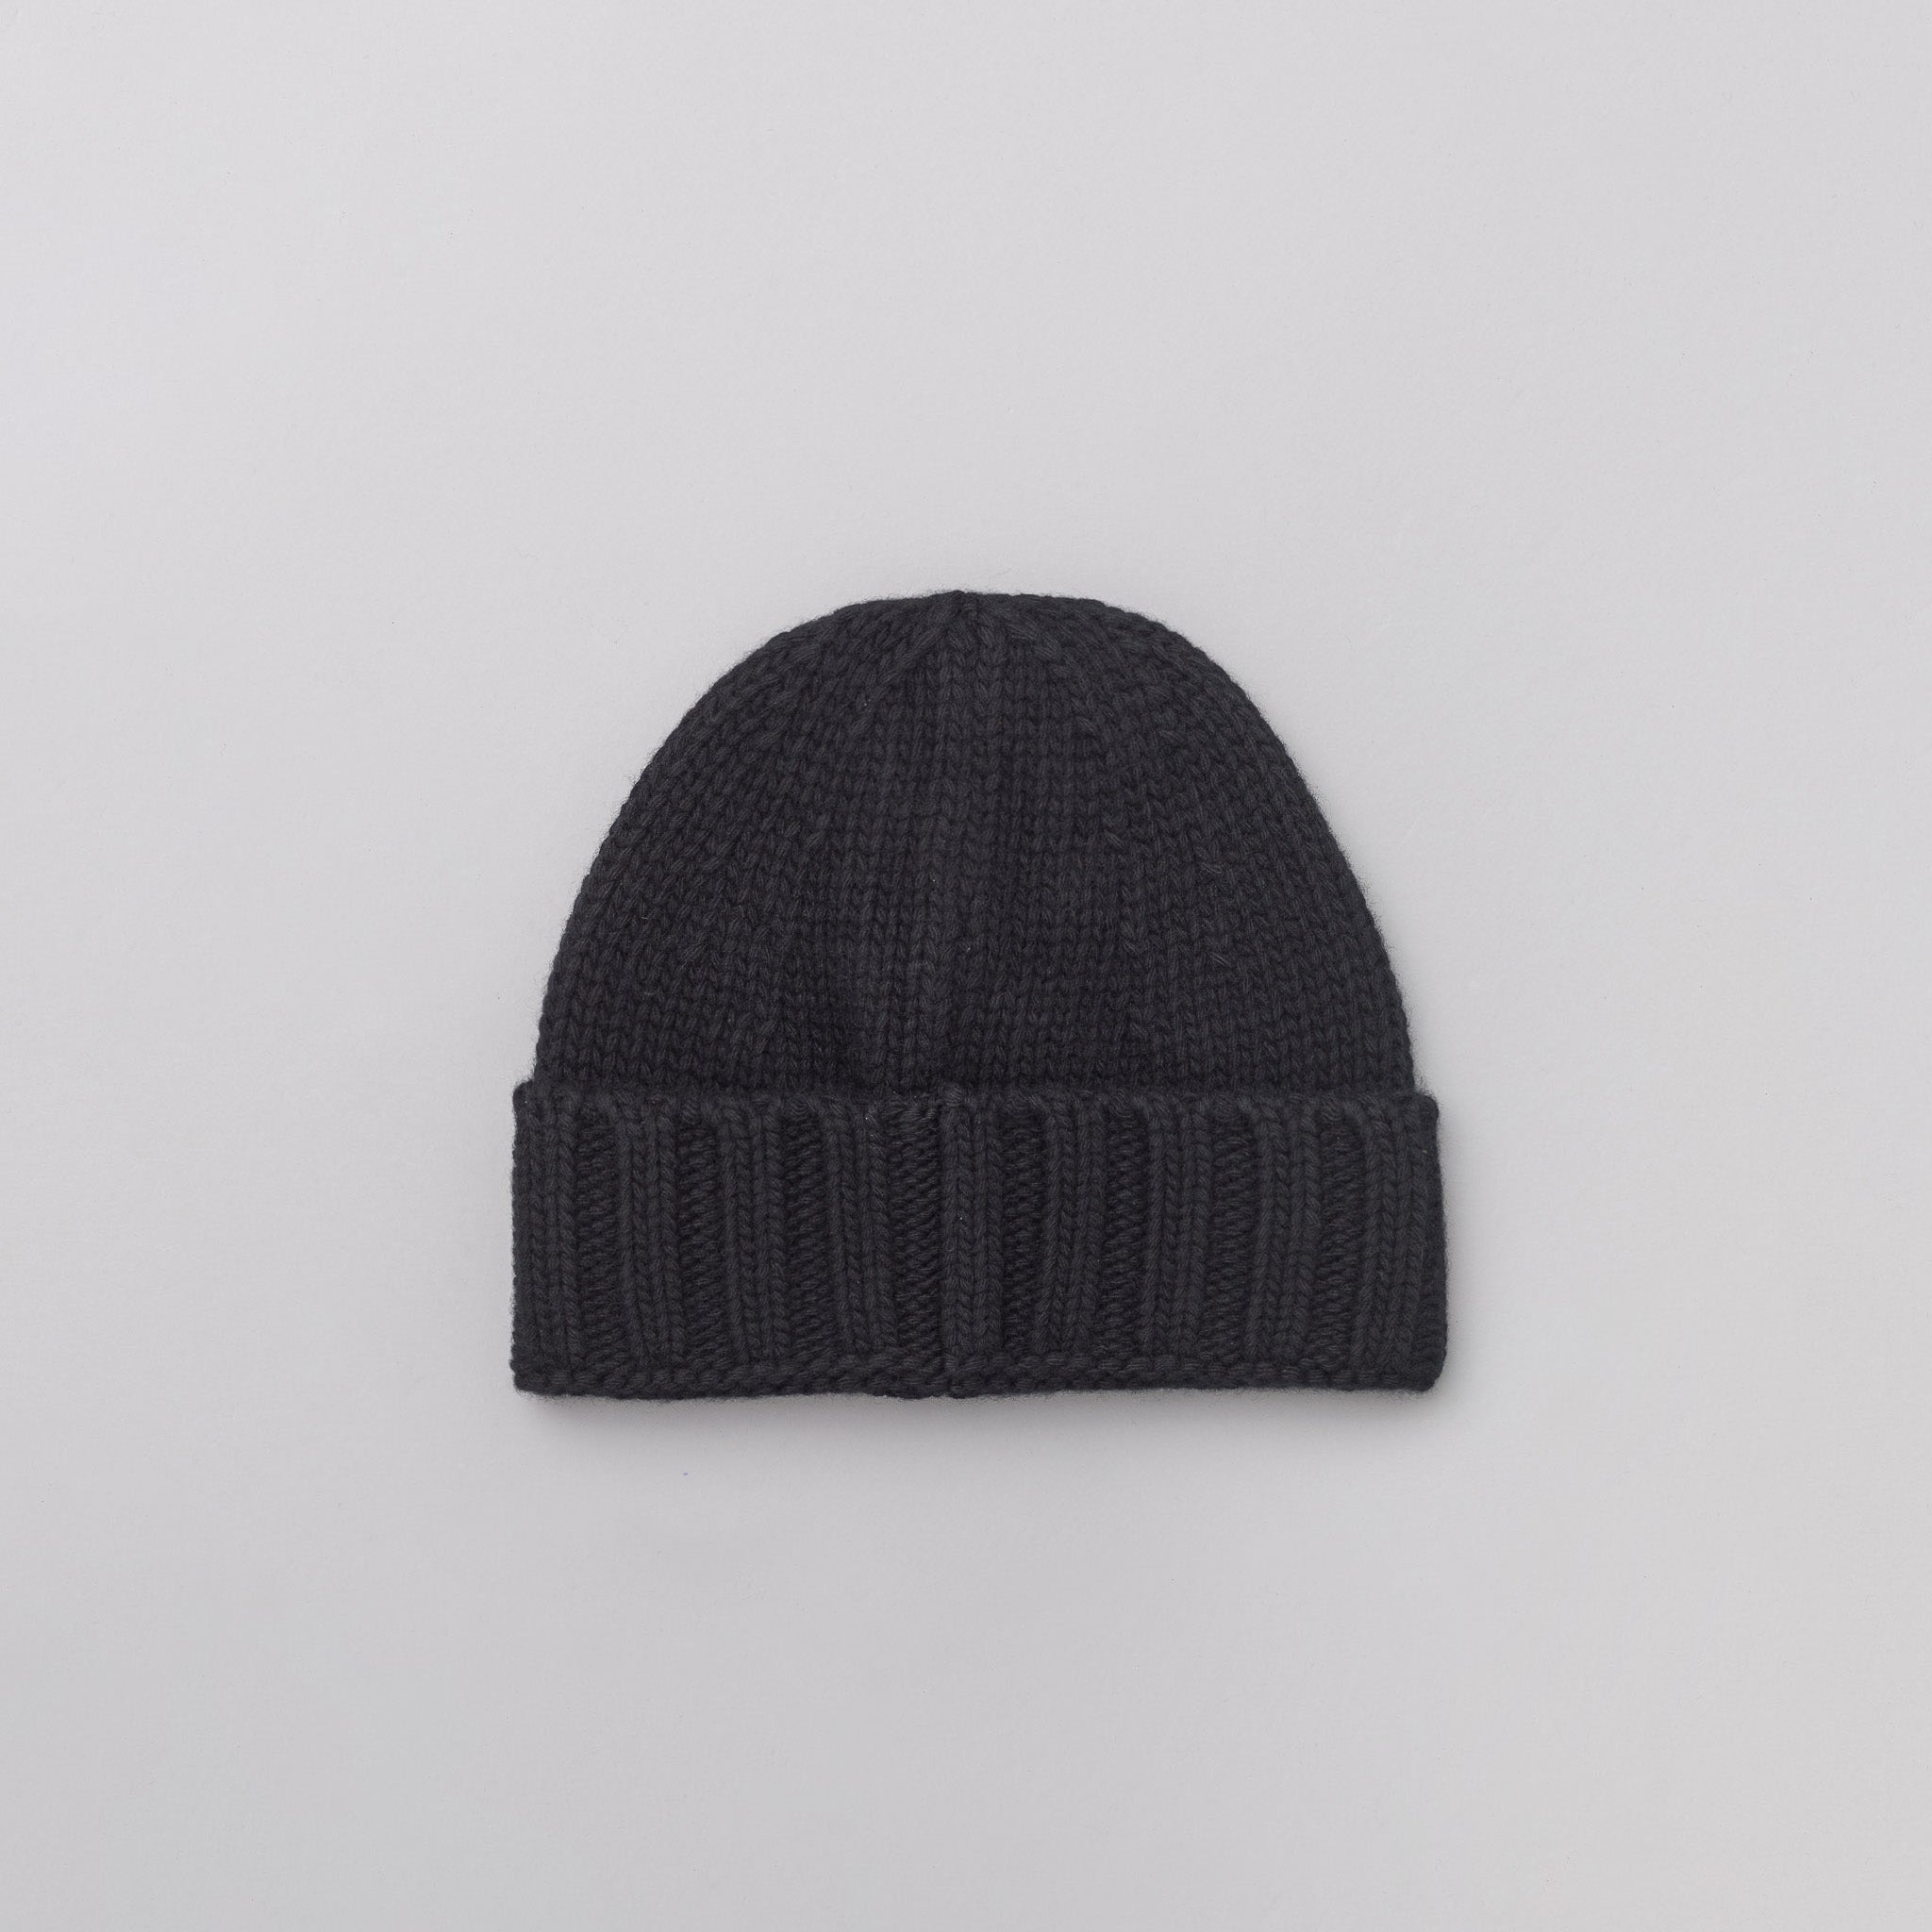 N07C1 Knit Logo Cap in Black